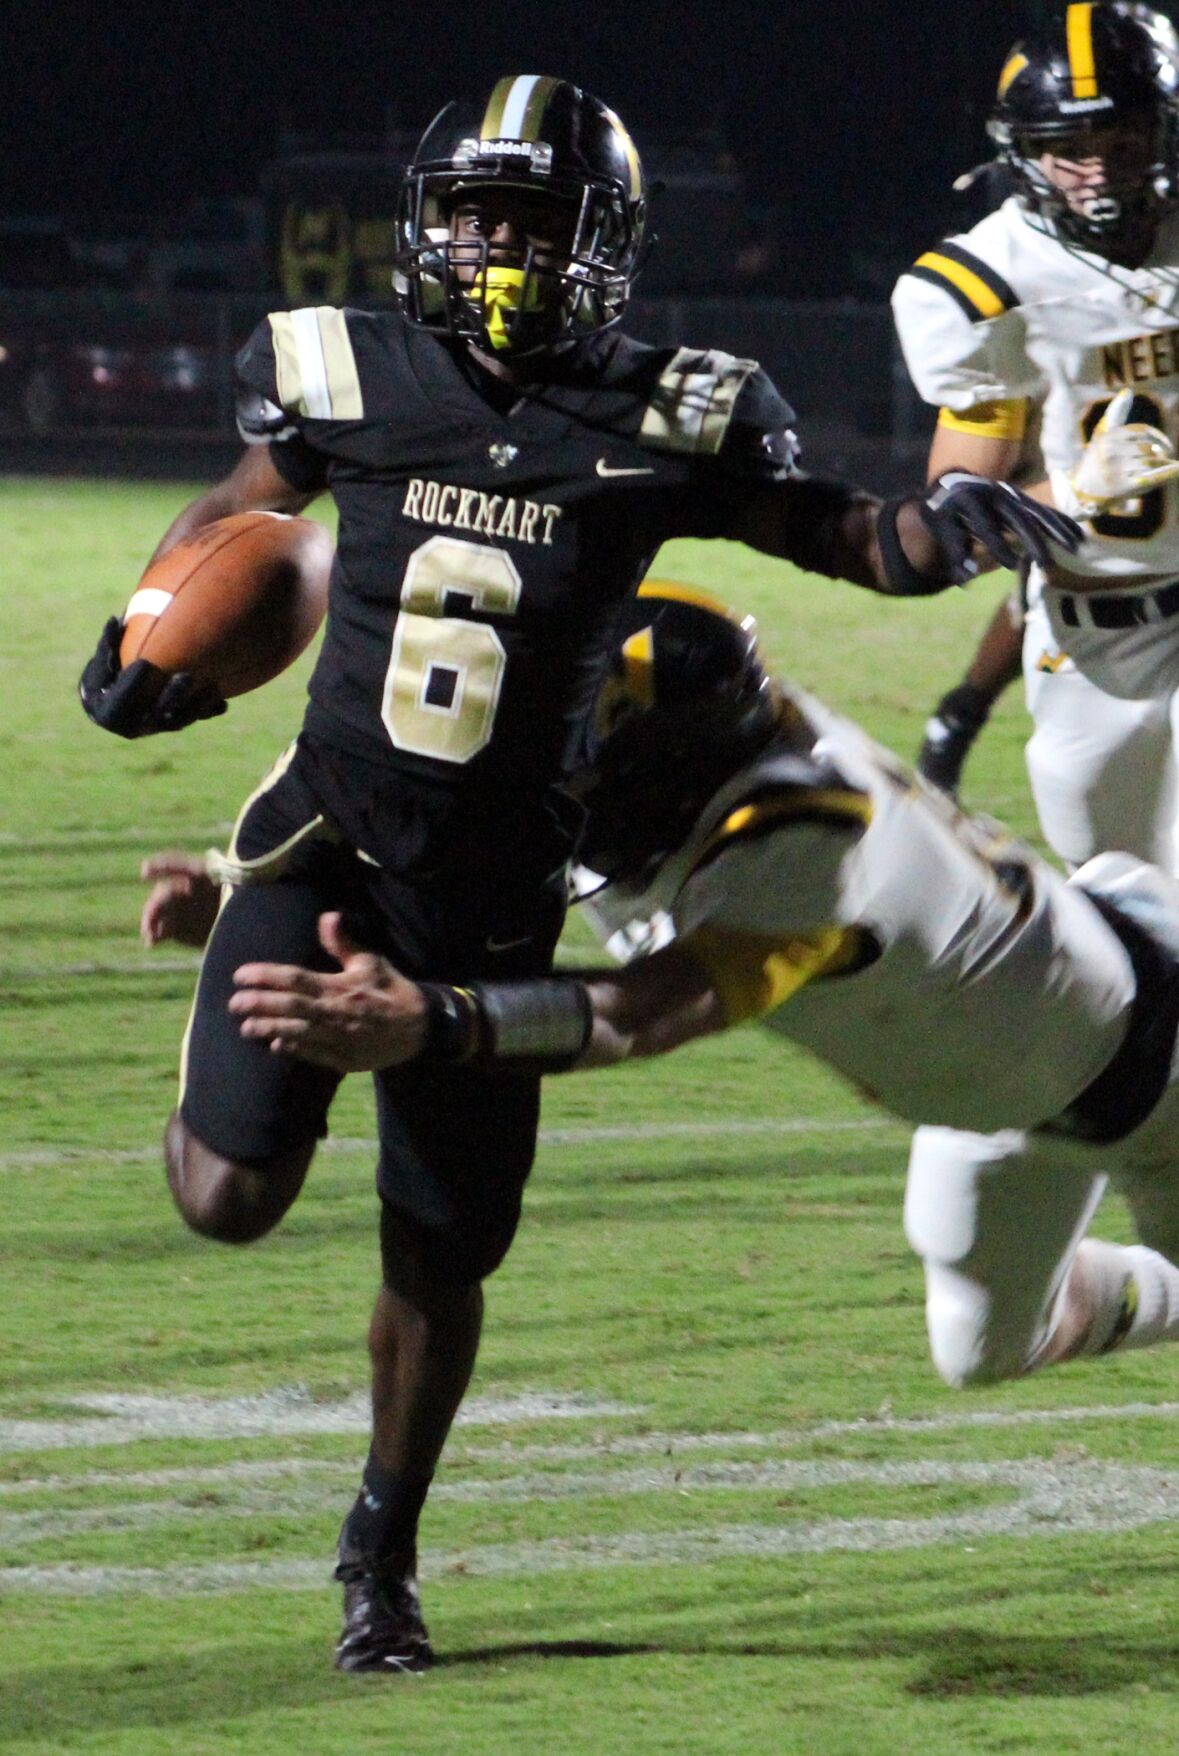 McCullough's 3 TDs leads Rockmart past Mountaineers